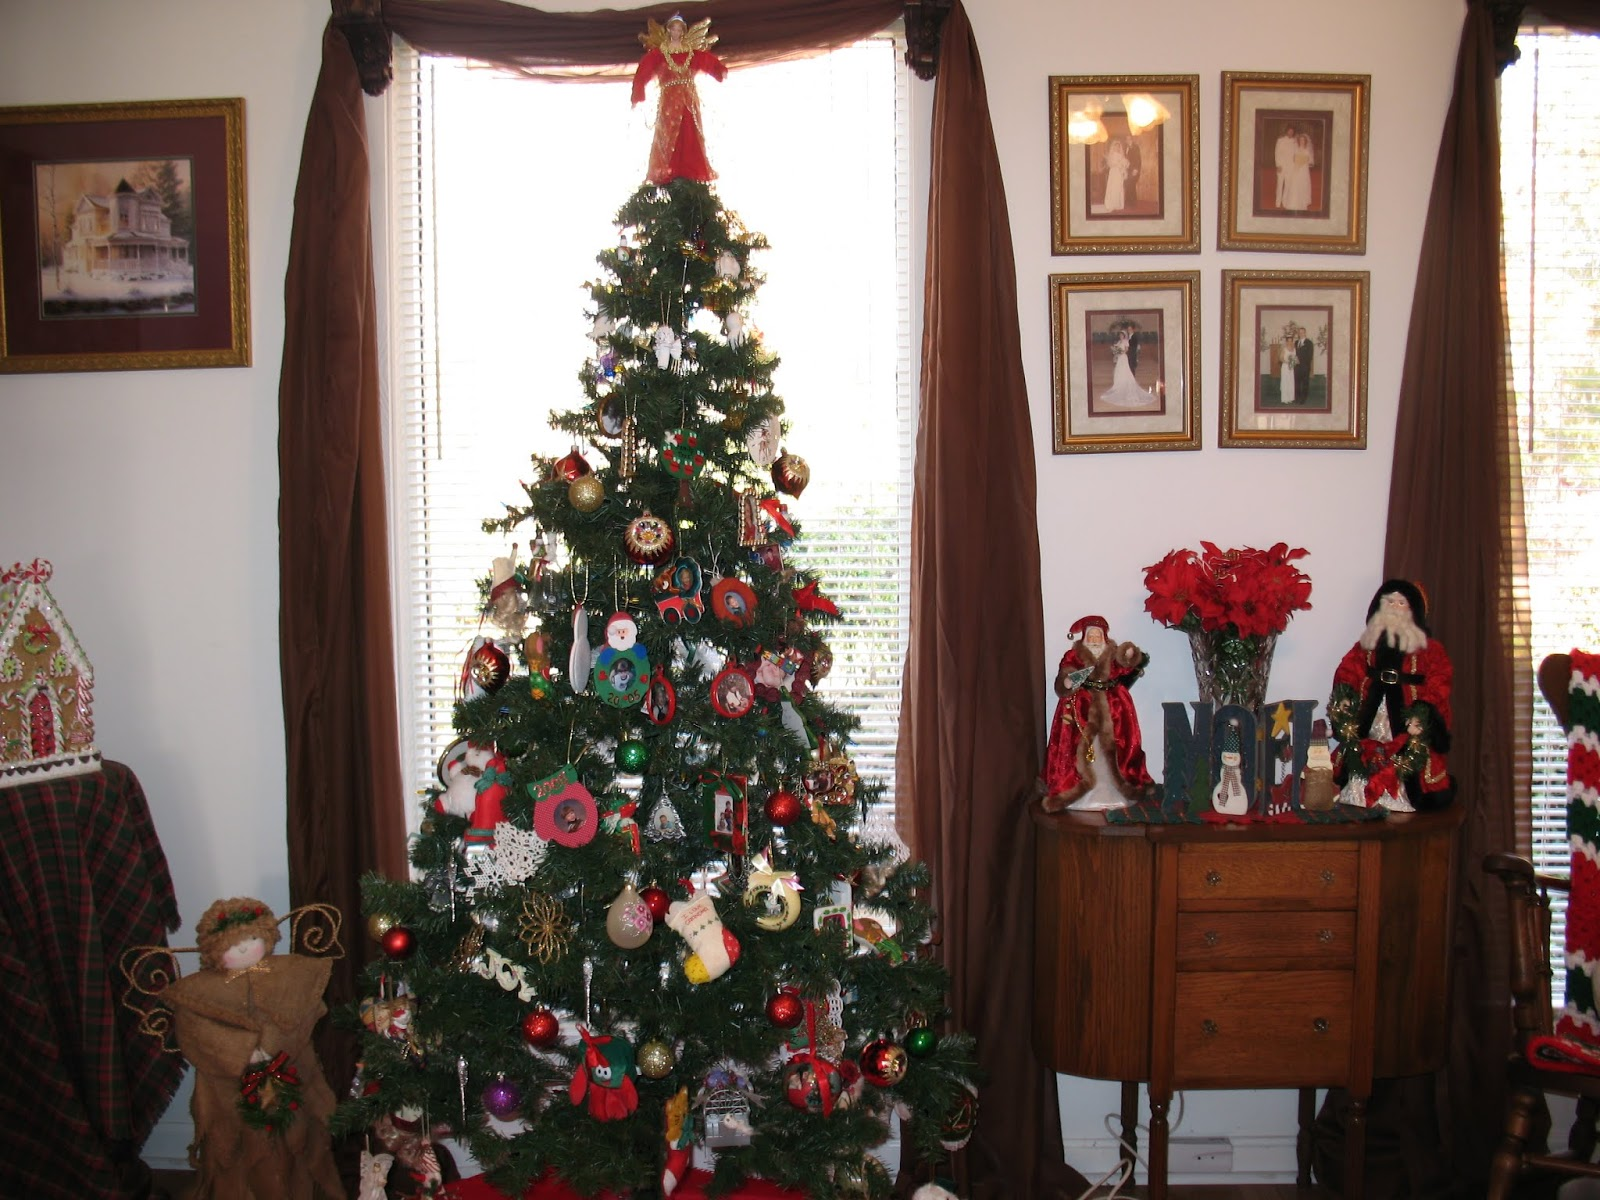 This Six Foot Green Tree With Colored Lights And Ornaments With My Grandchildren And Great Grandchildren Pictures And Ornaments That Have Been Given To Me